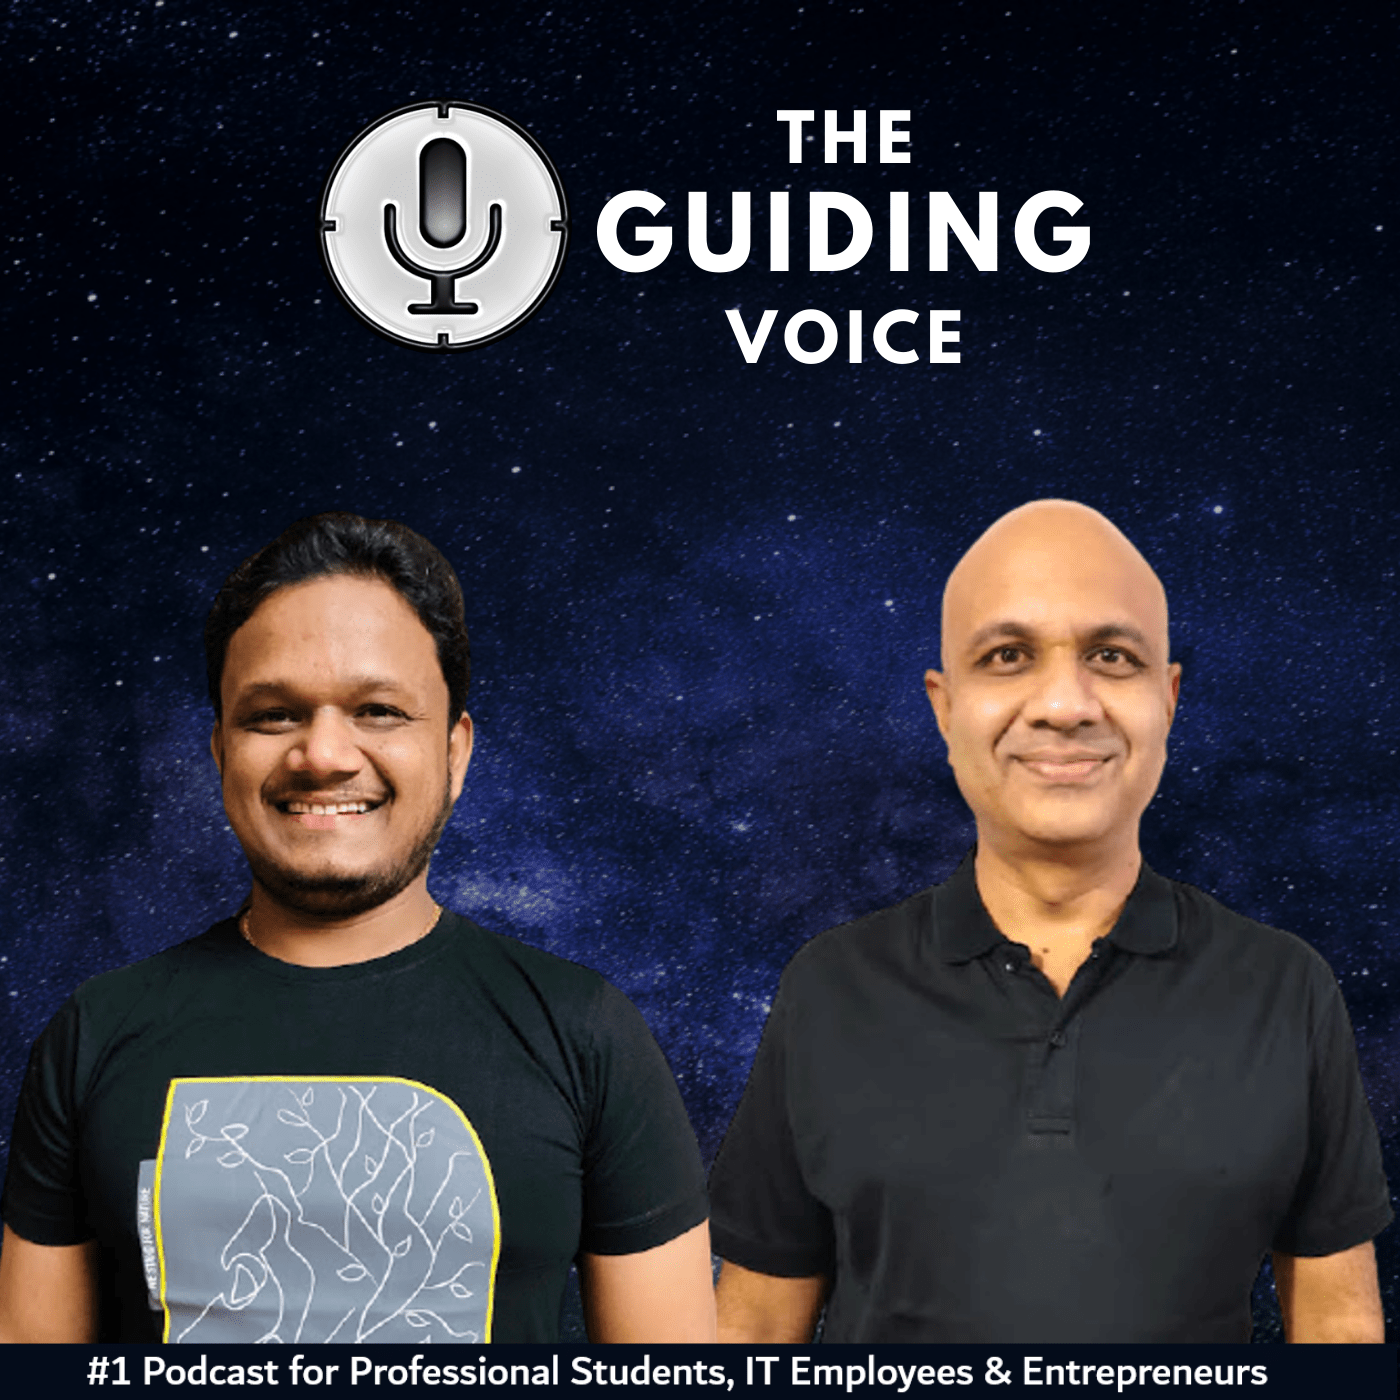 The Guiding Voice